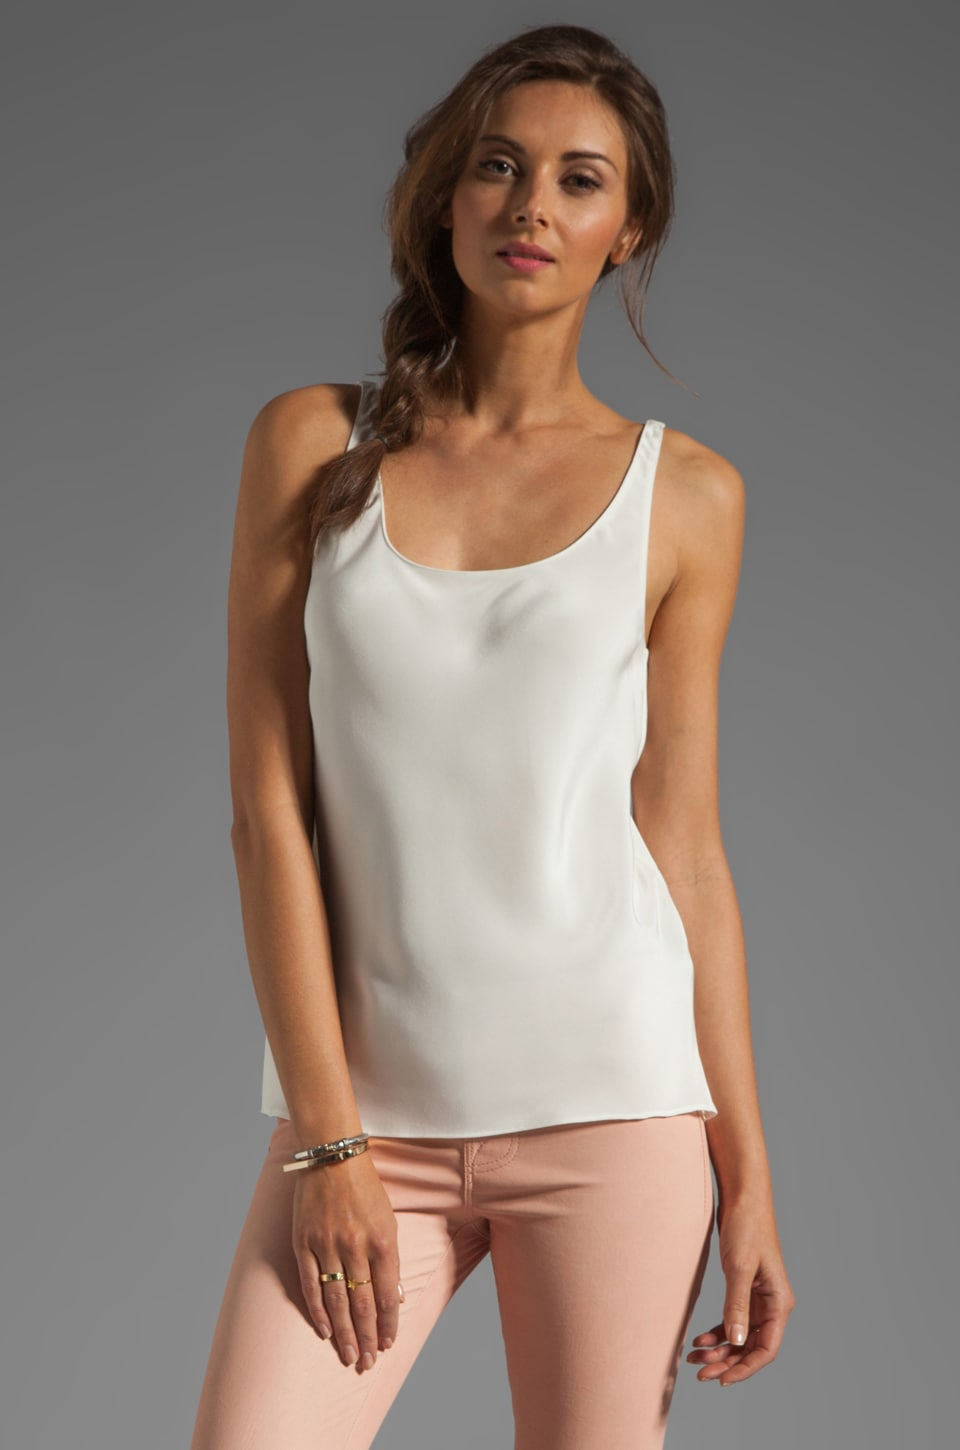 Tibi Silk Refined Scoopneck Tank in White